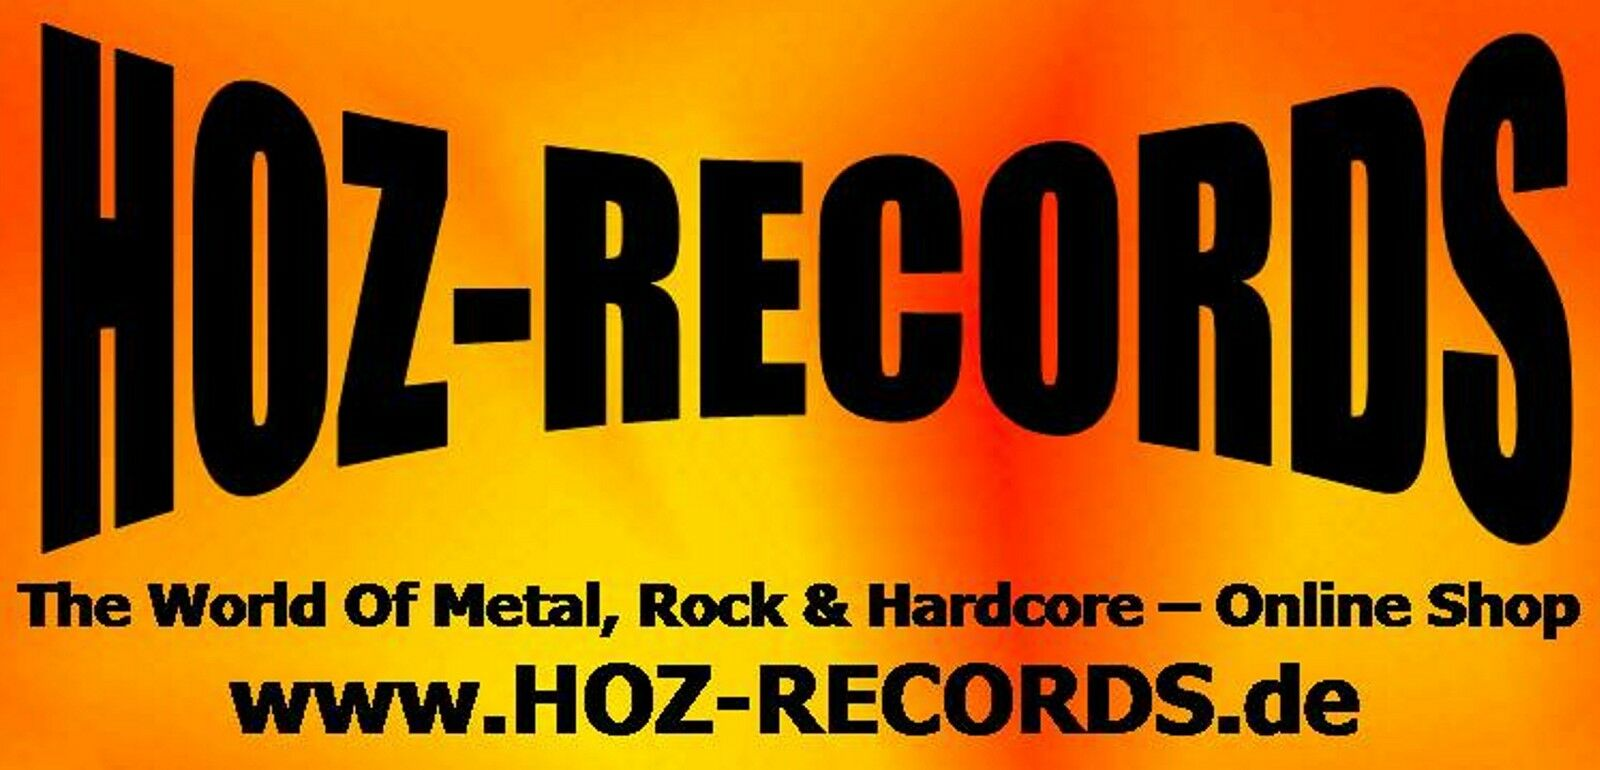 hoz-records